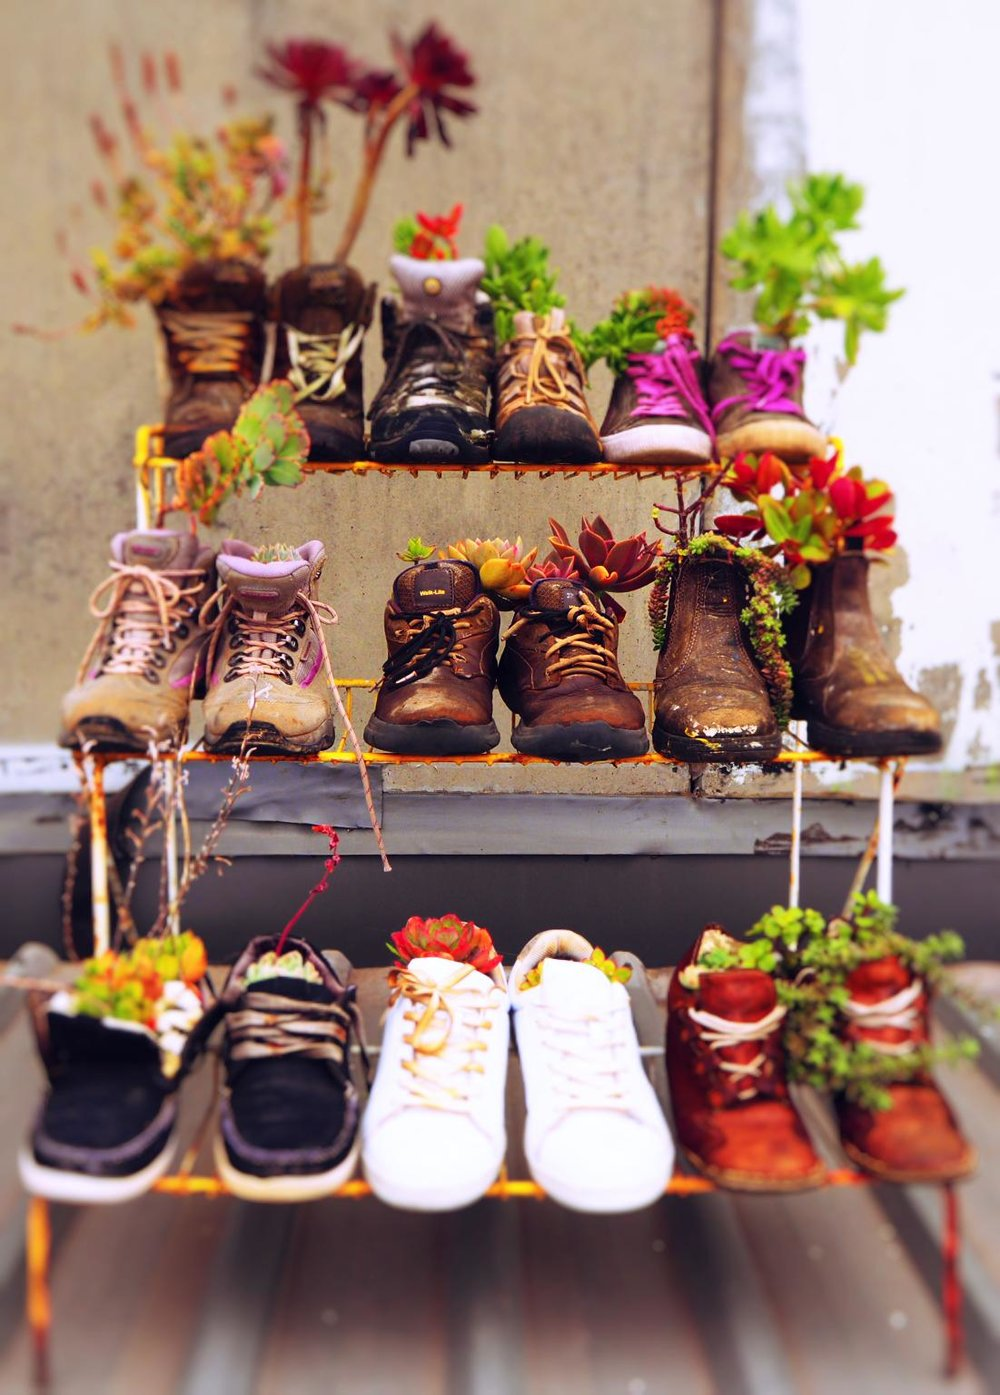 Shoe garden shelves.jpg